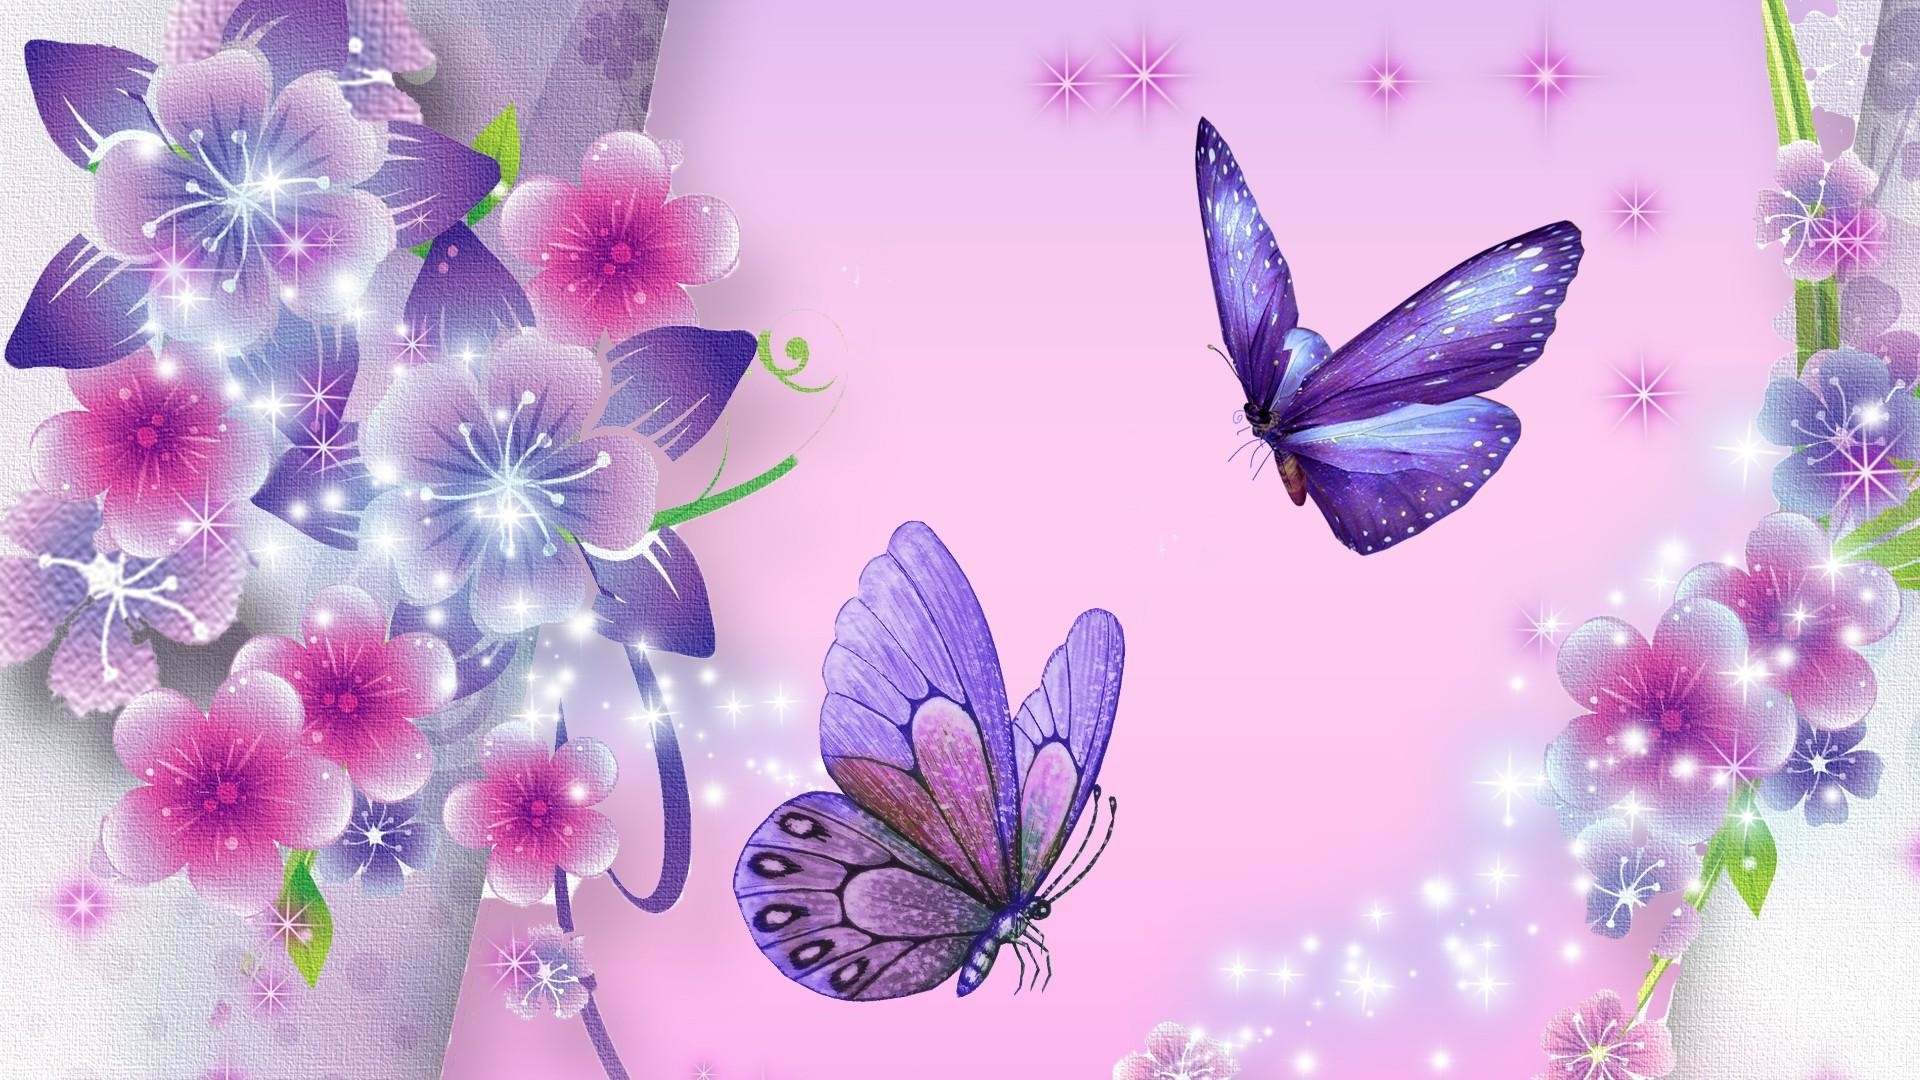 1920x1080 flowers & butterflies wallpaper - Google Search